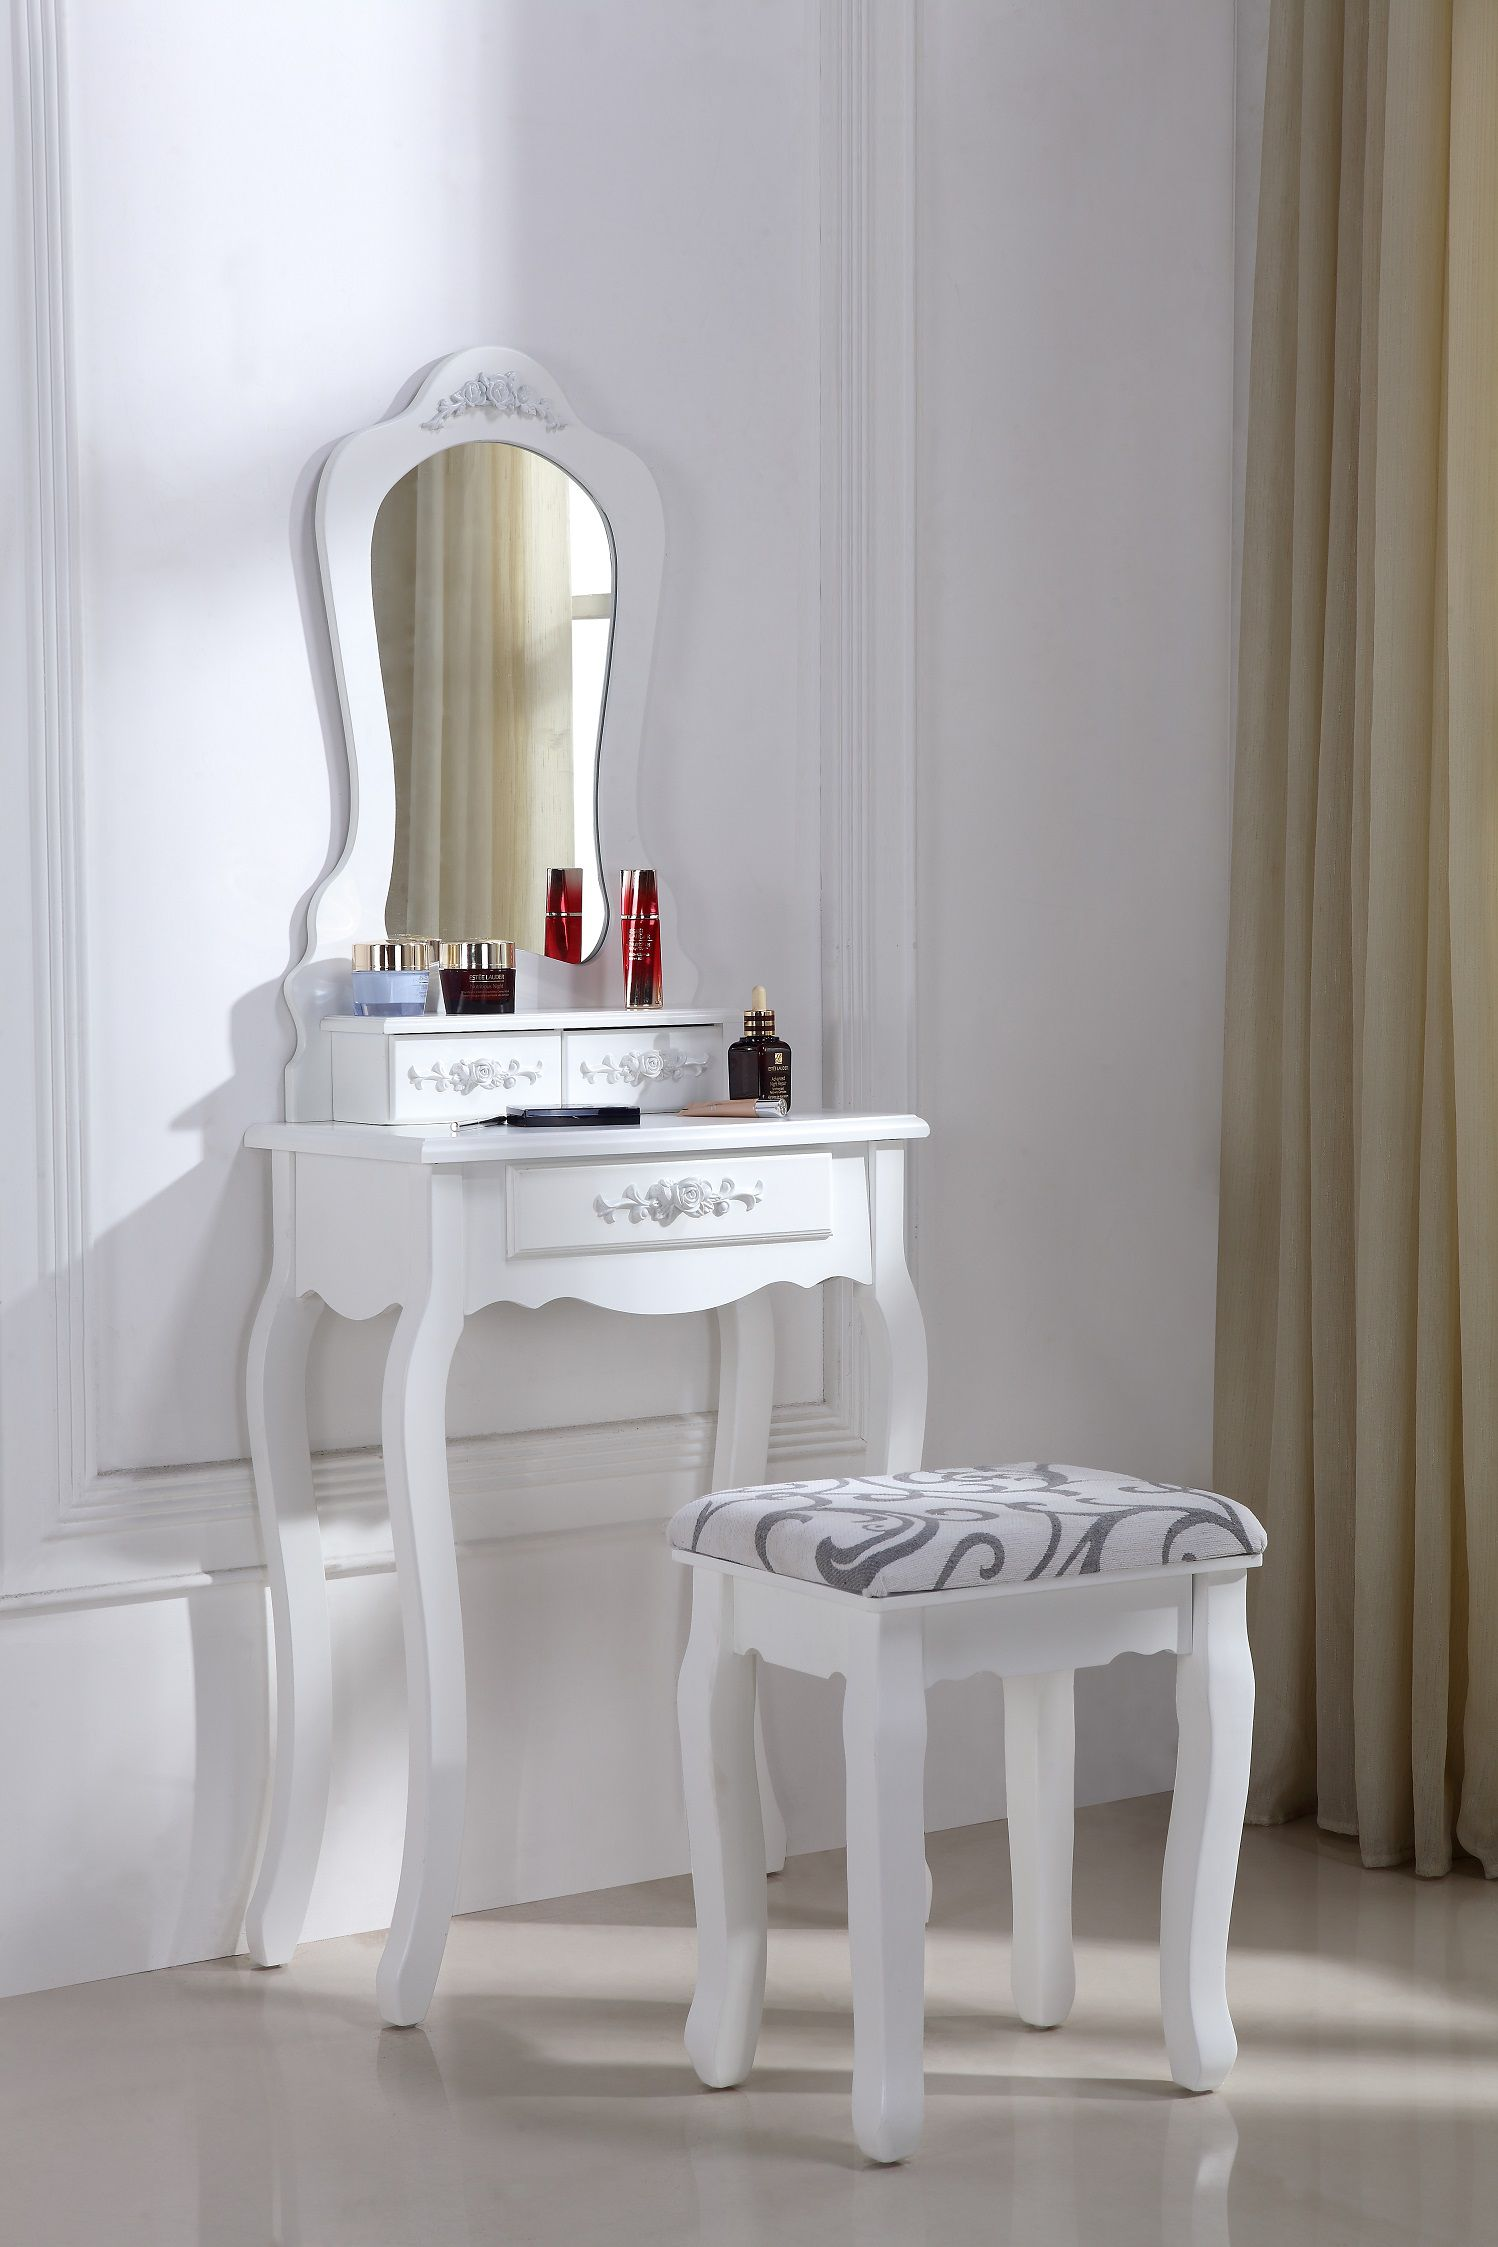 Coiffeuse Meuble Cdiscount Superbe Coiffeuse Table De Maquillage Style Baroqu Achat